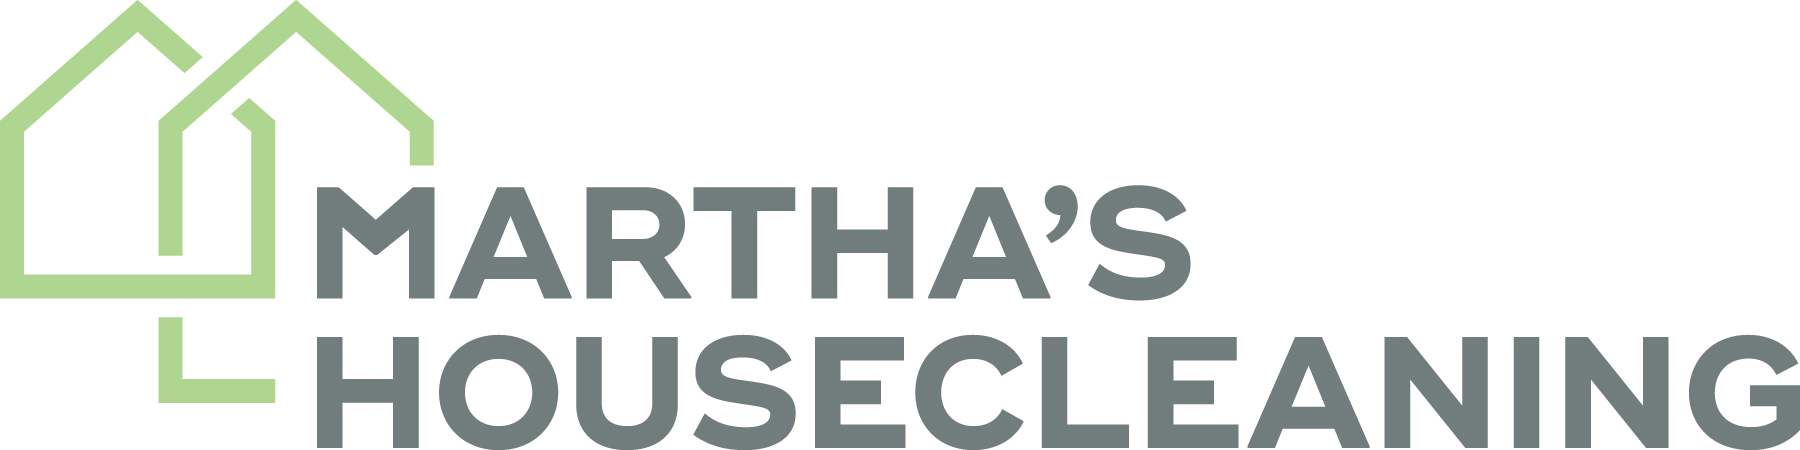 Martha's Cleaning: Residential & Commercial Cleaning Services